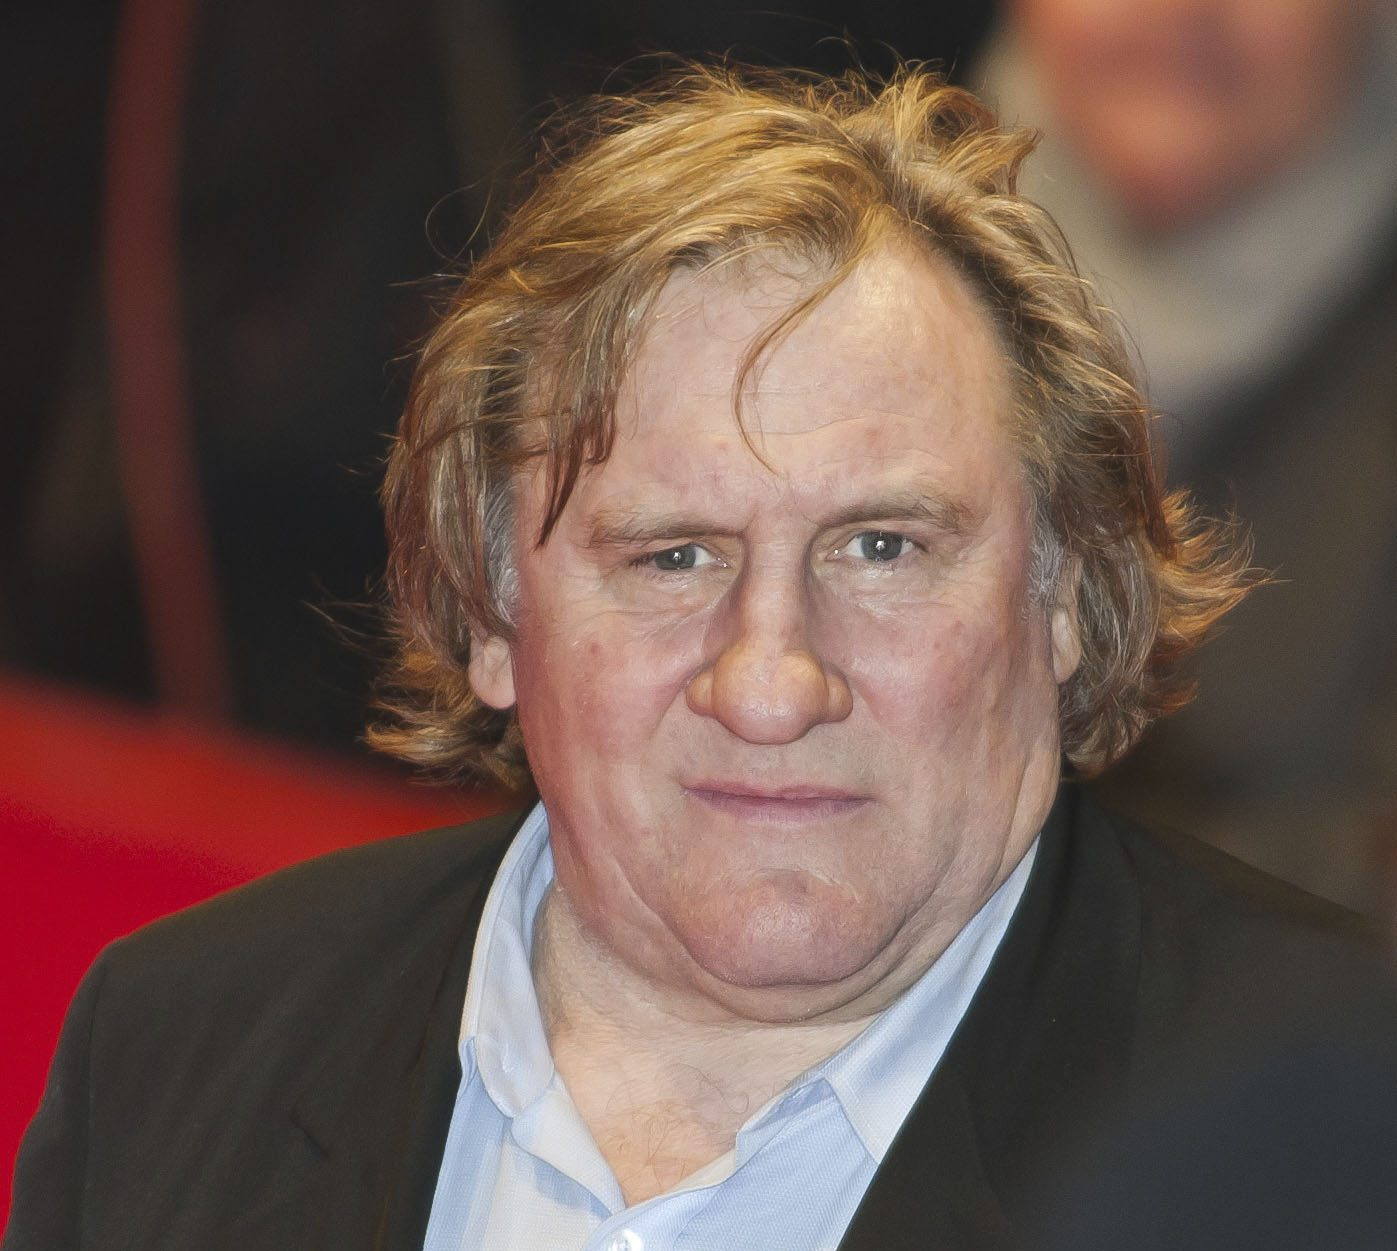 Gerard Depardieu Berlin Film Festival 2010 e1617006000802 25 Times Celebrities Admitted To Awful Things In Interviews